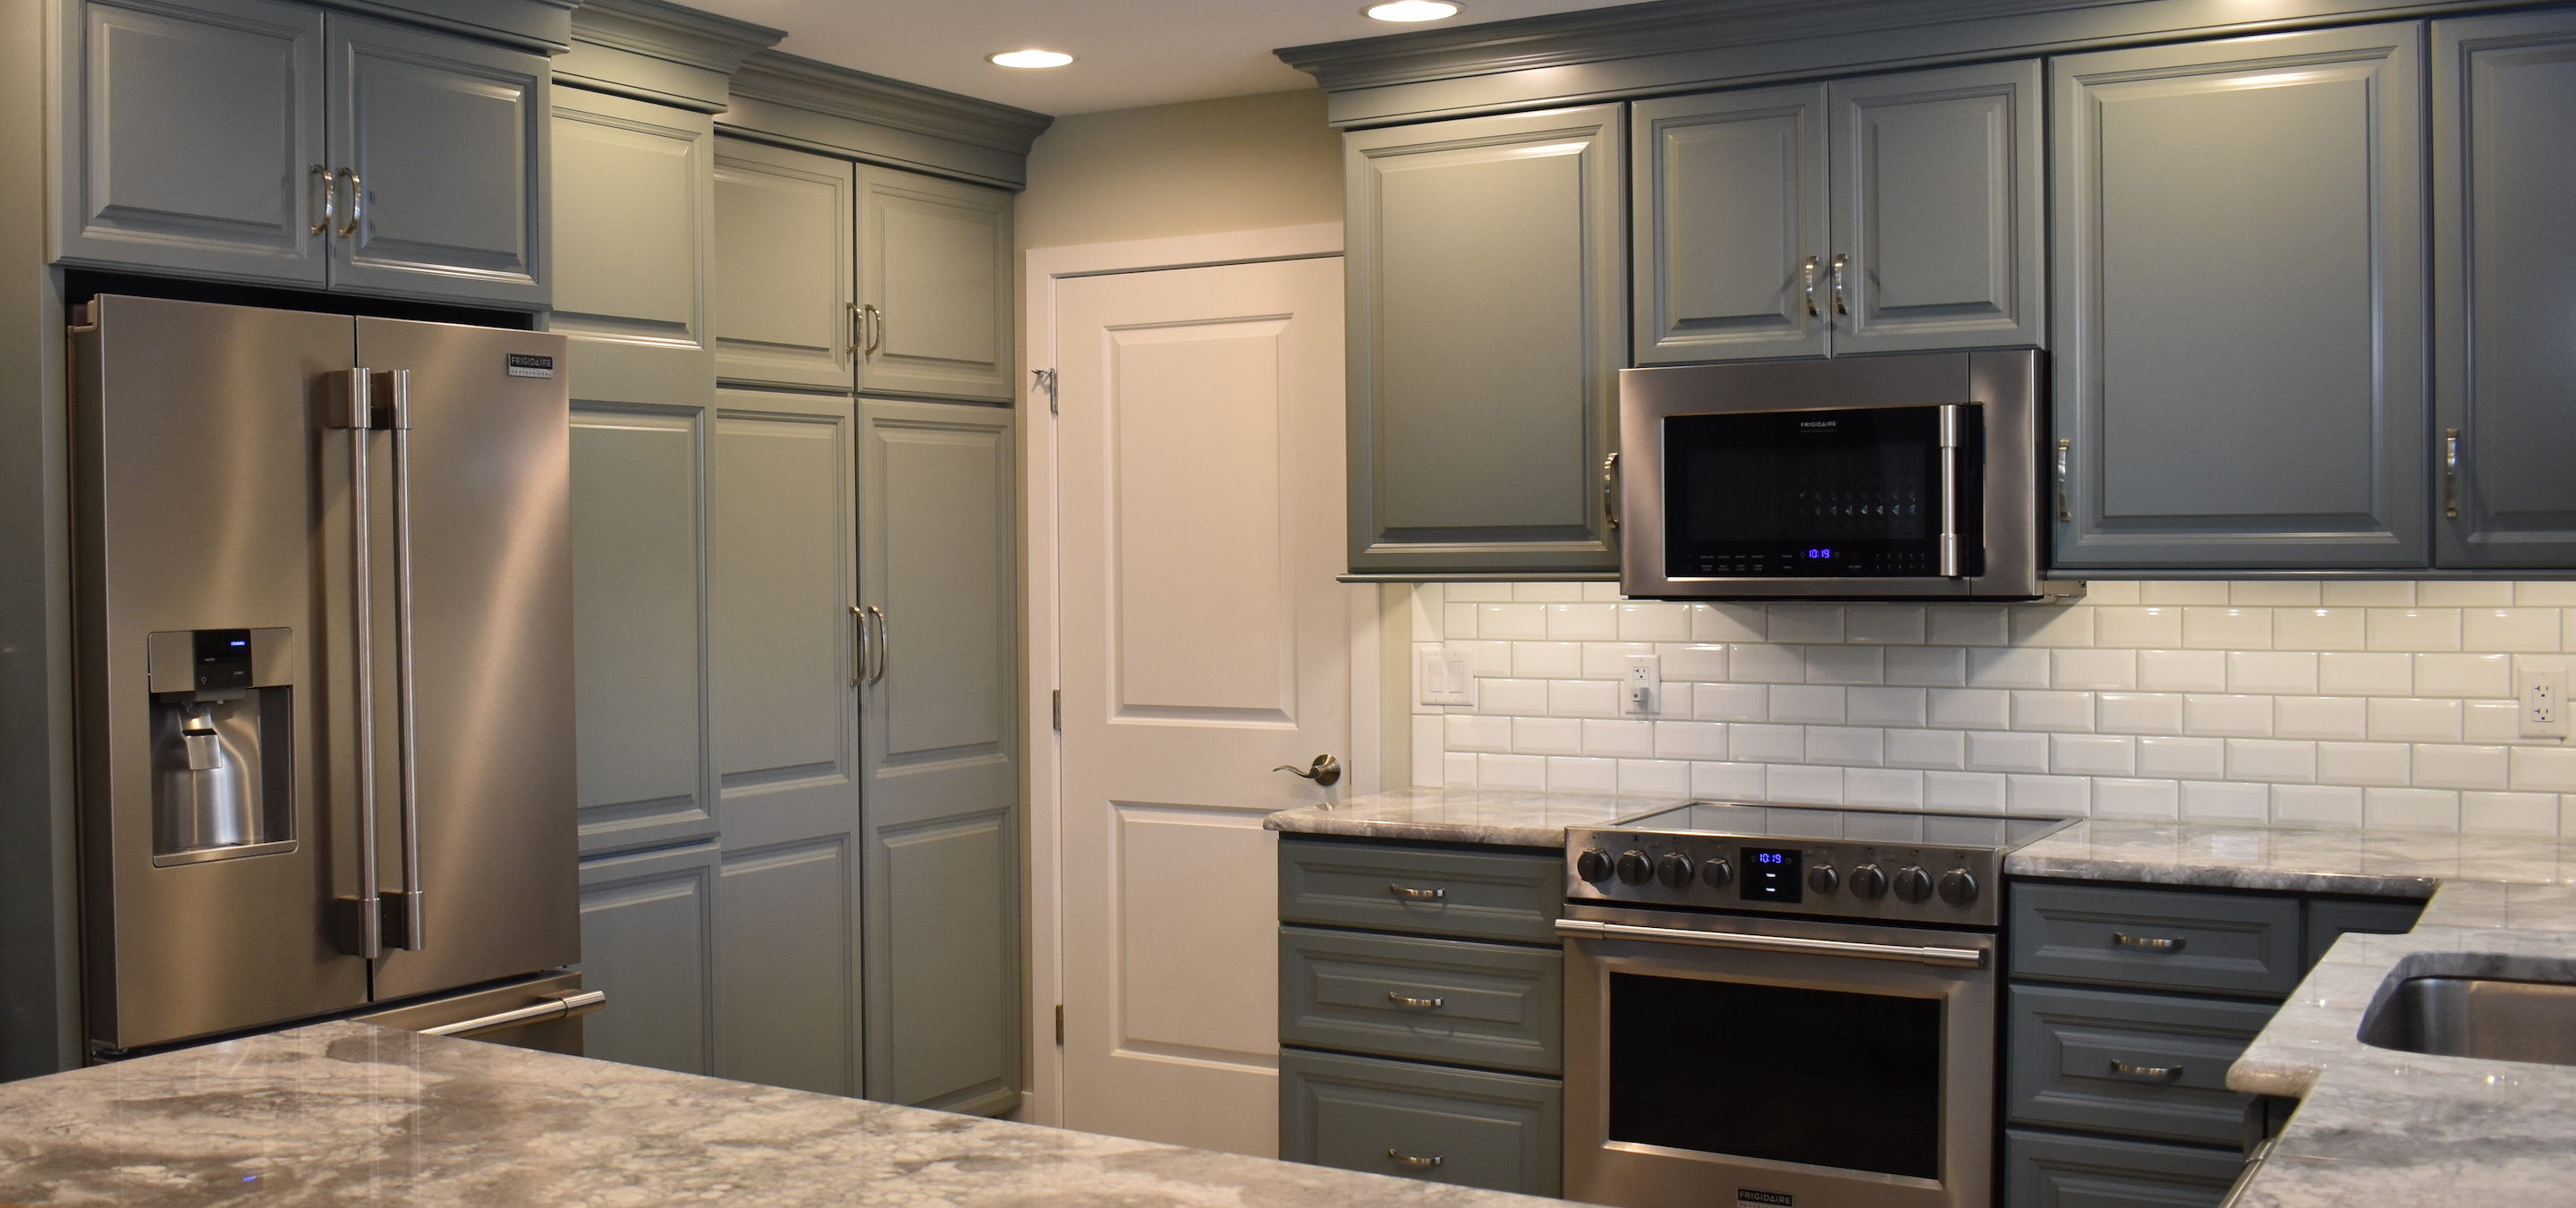 Rm kitchens inc custom cabinet makers installers in for Kitchen cabinet makers